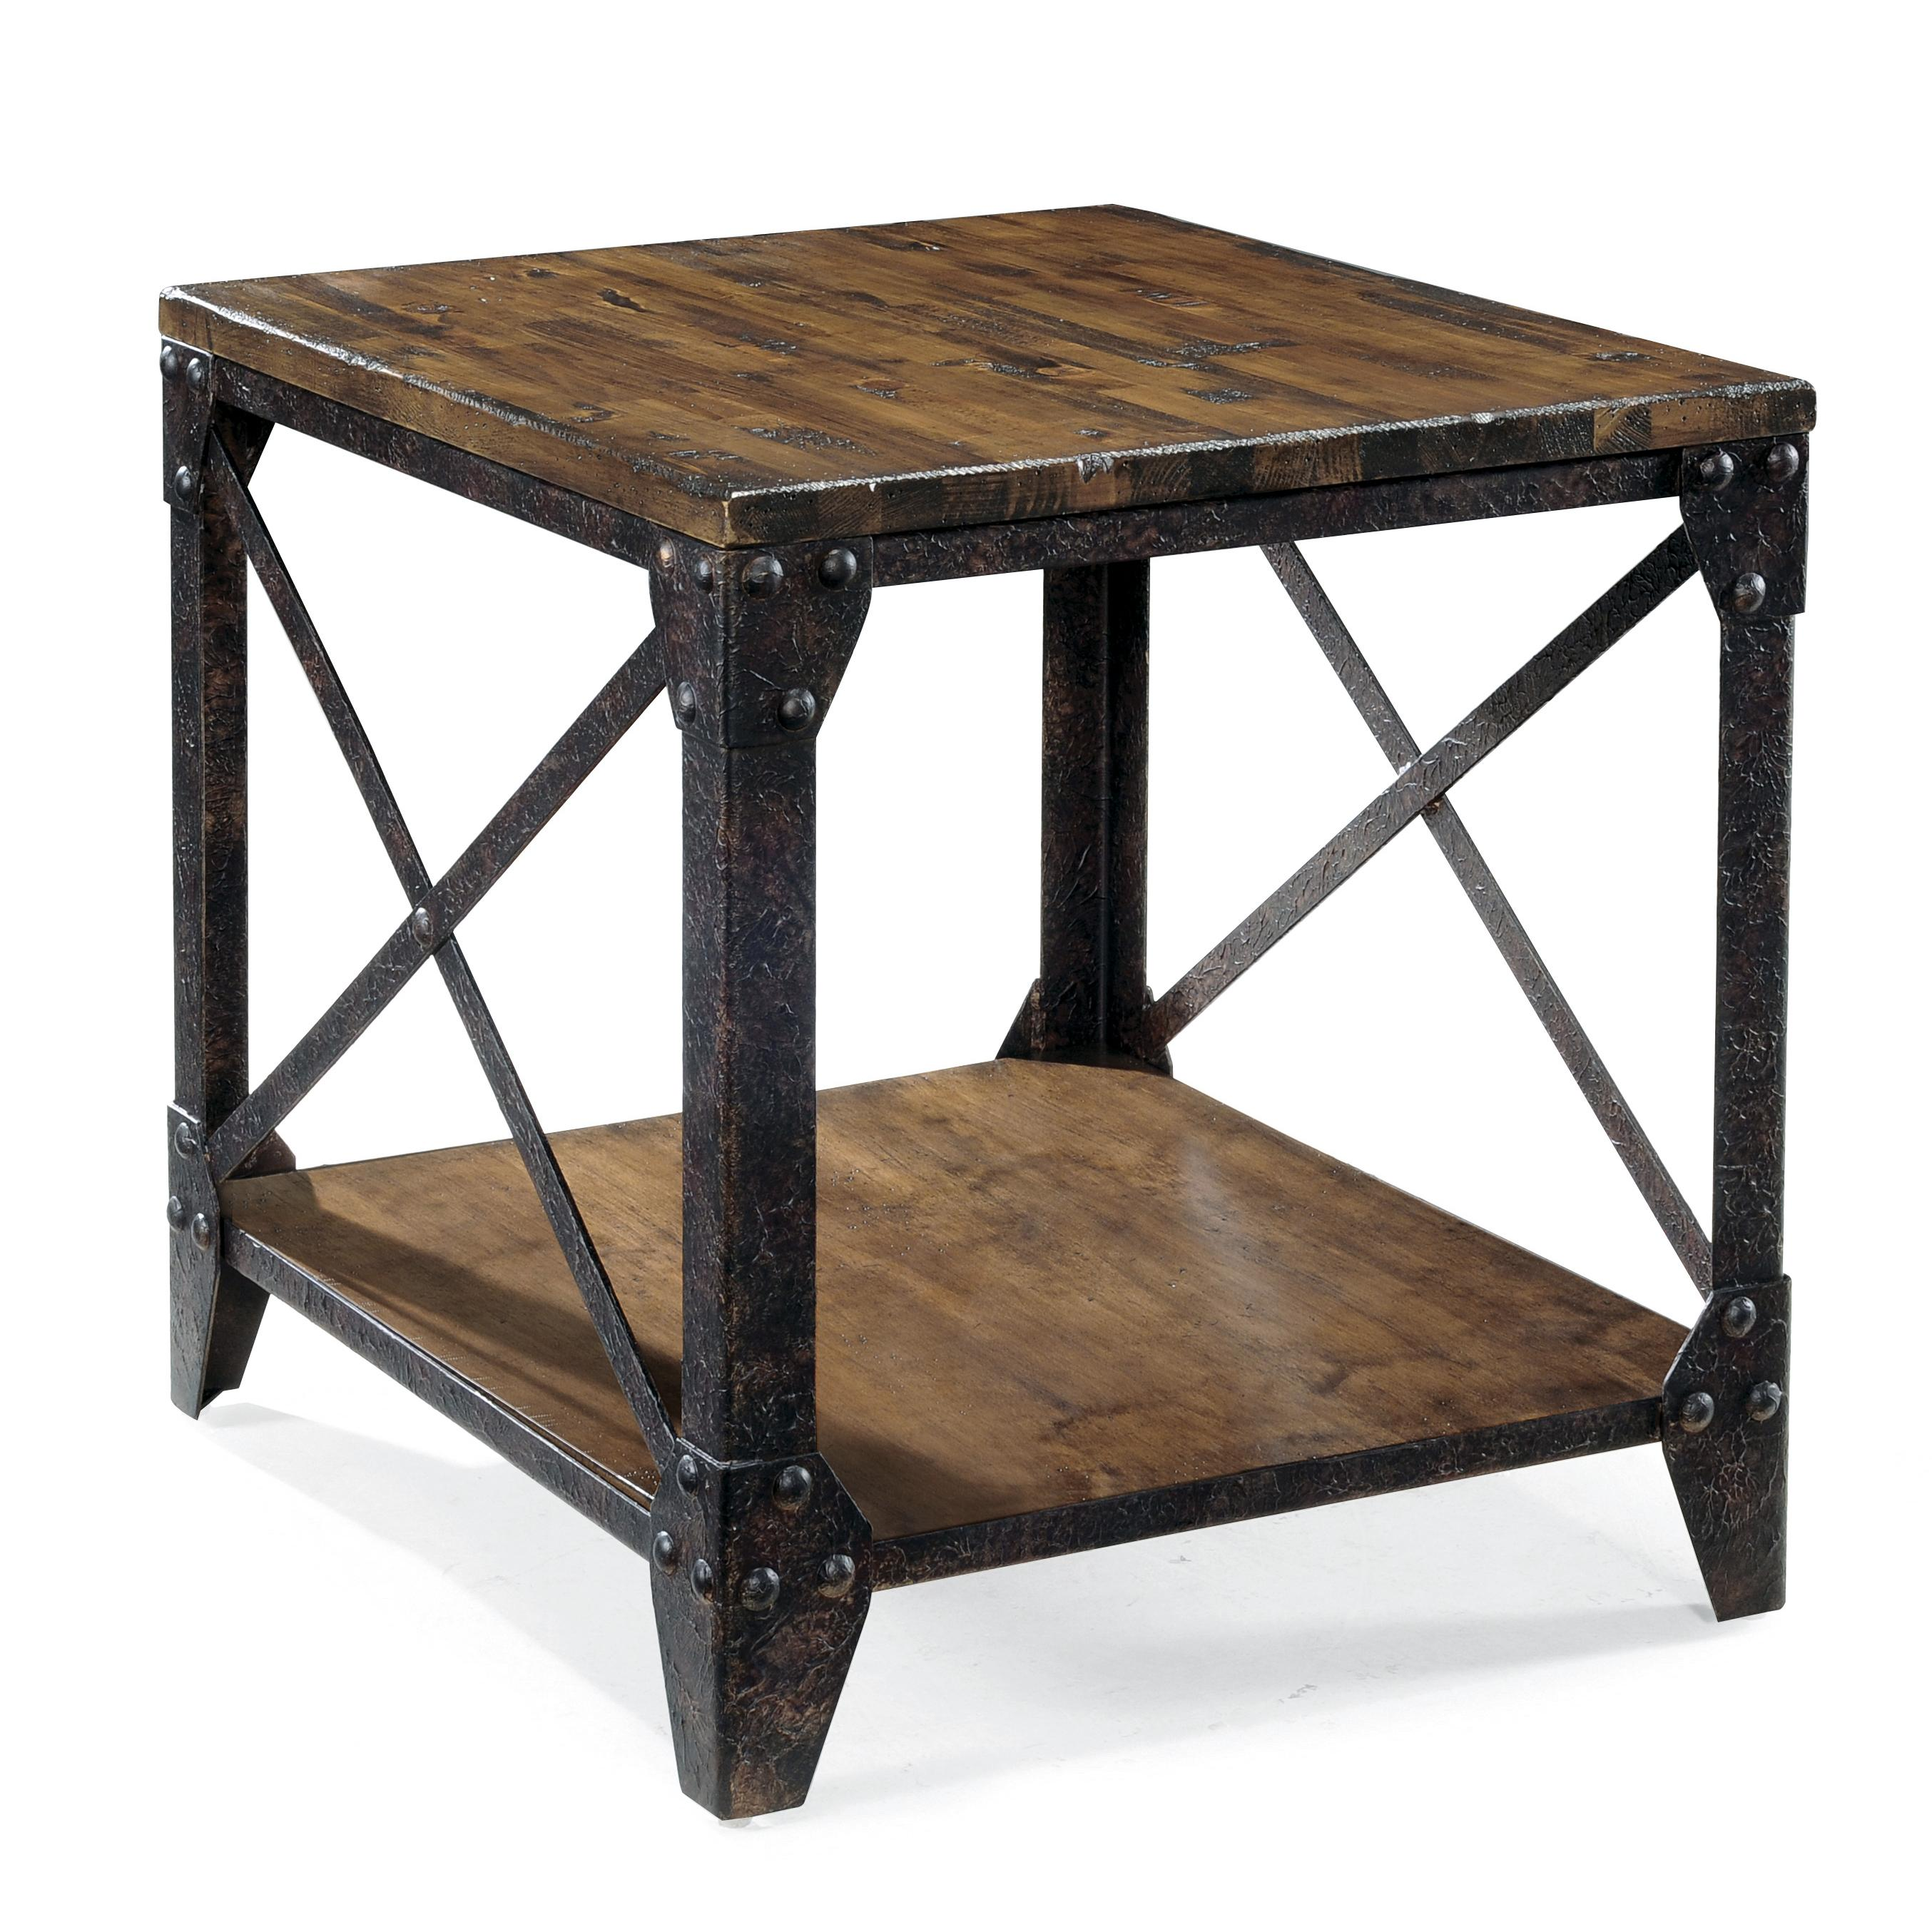 magnussen home pinebrook rectangular end table with rustic products color accent industrial ralph lauren tablecloth inch round plastic tablecloths outdoor wood bench inexpensive